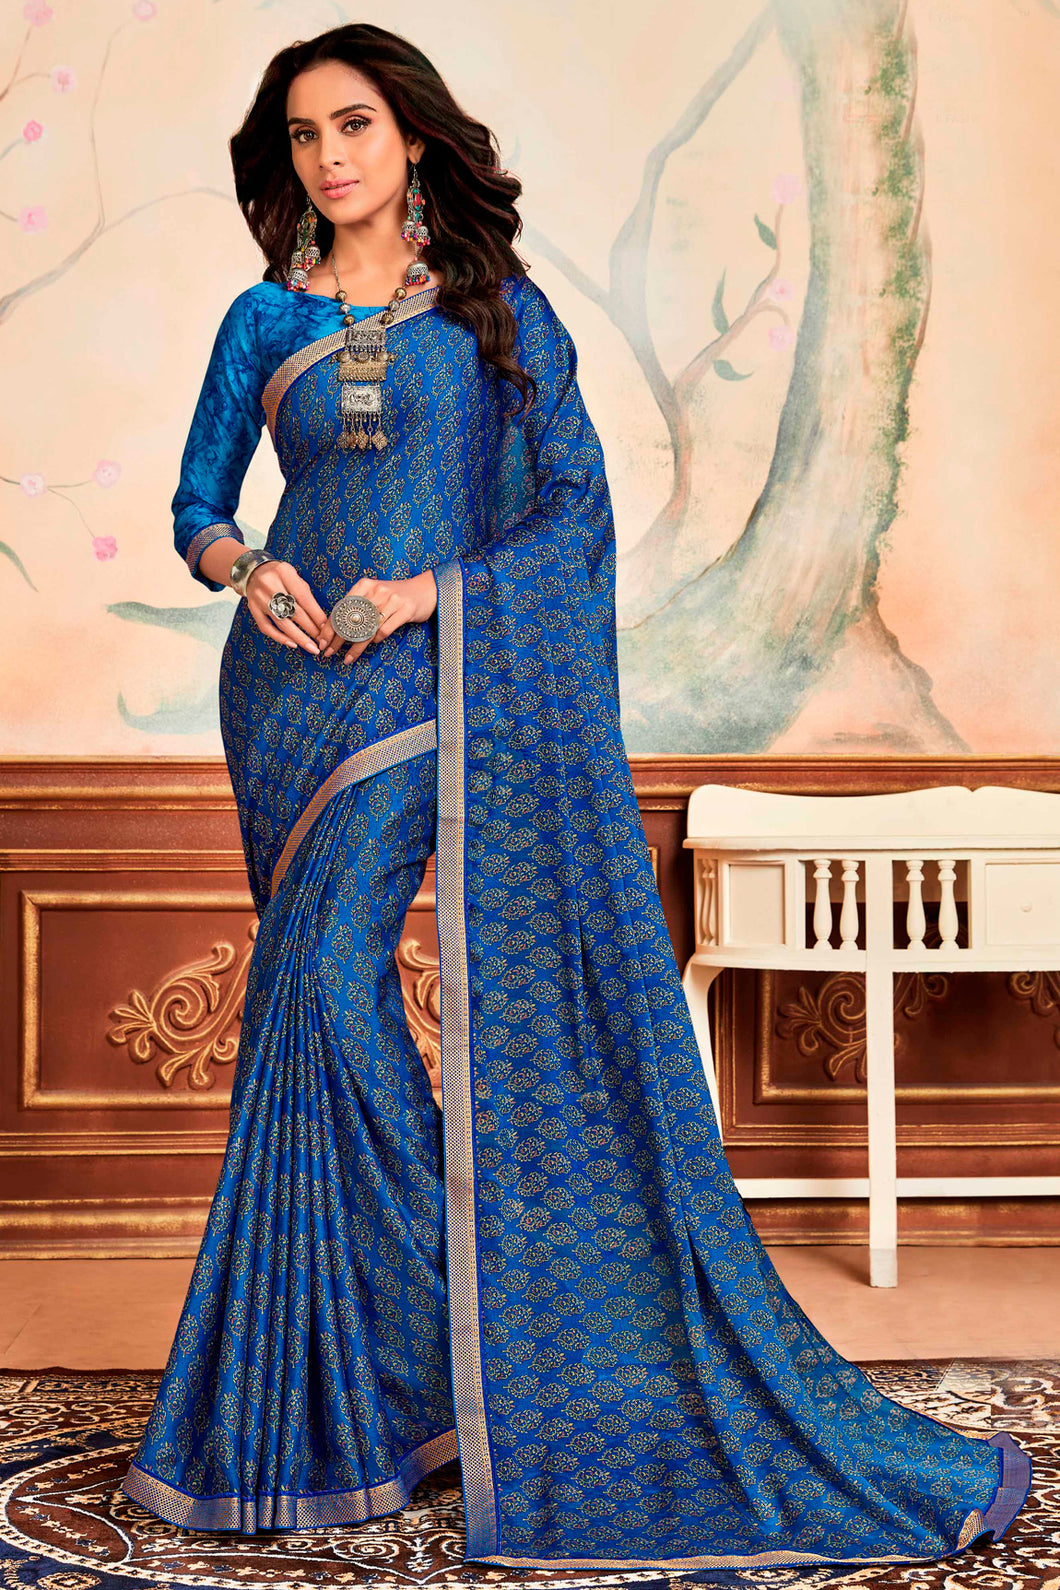 Bhelpuri Blue Silky Chiffon Print Work Lace Border Traditional Saree with Blouse Piece